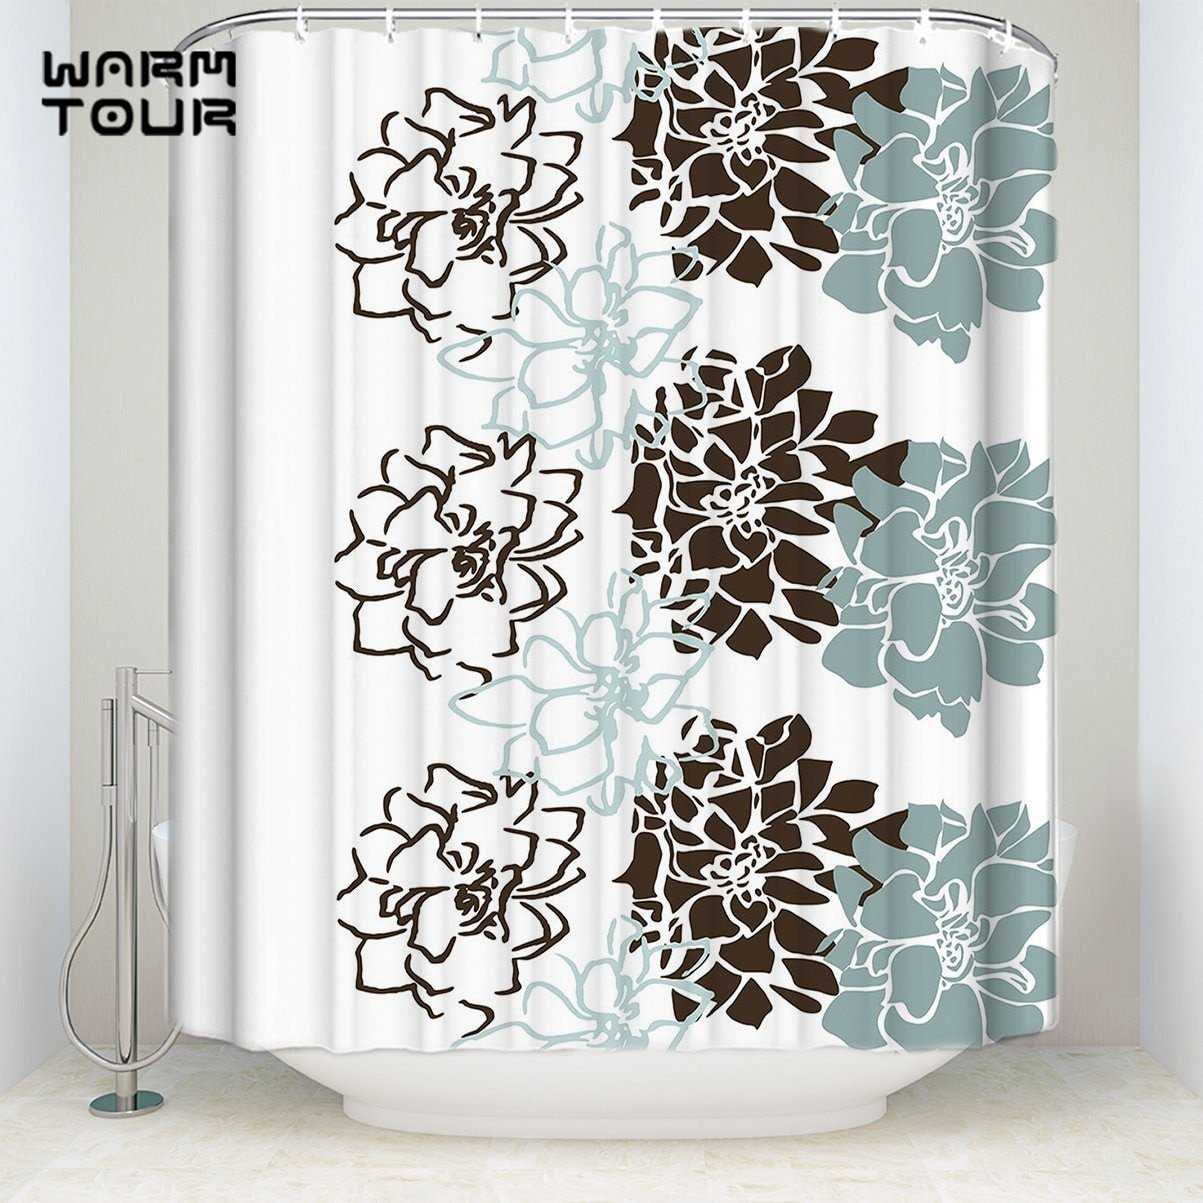 Blue and Brown Bathroom Decor New Bath Shower Curtains Geometric Flowers Blue Brown White Wel E Mildew Resistant Bathroom Decor